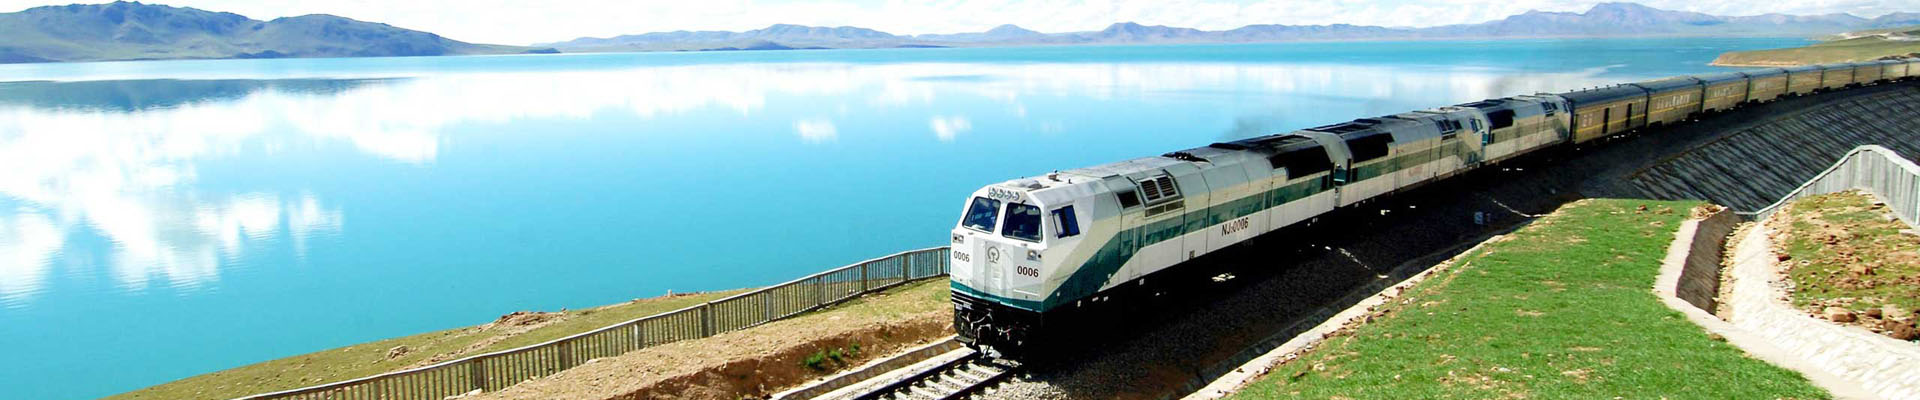 Sky train from China to Tibet via Qinghai Tibet Railway